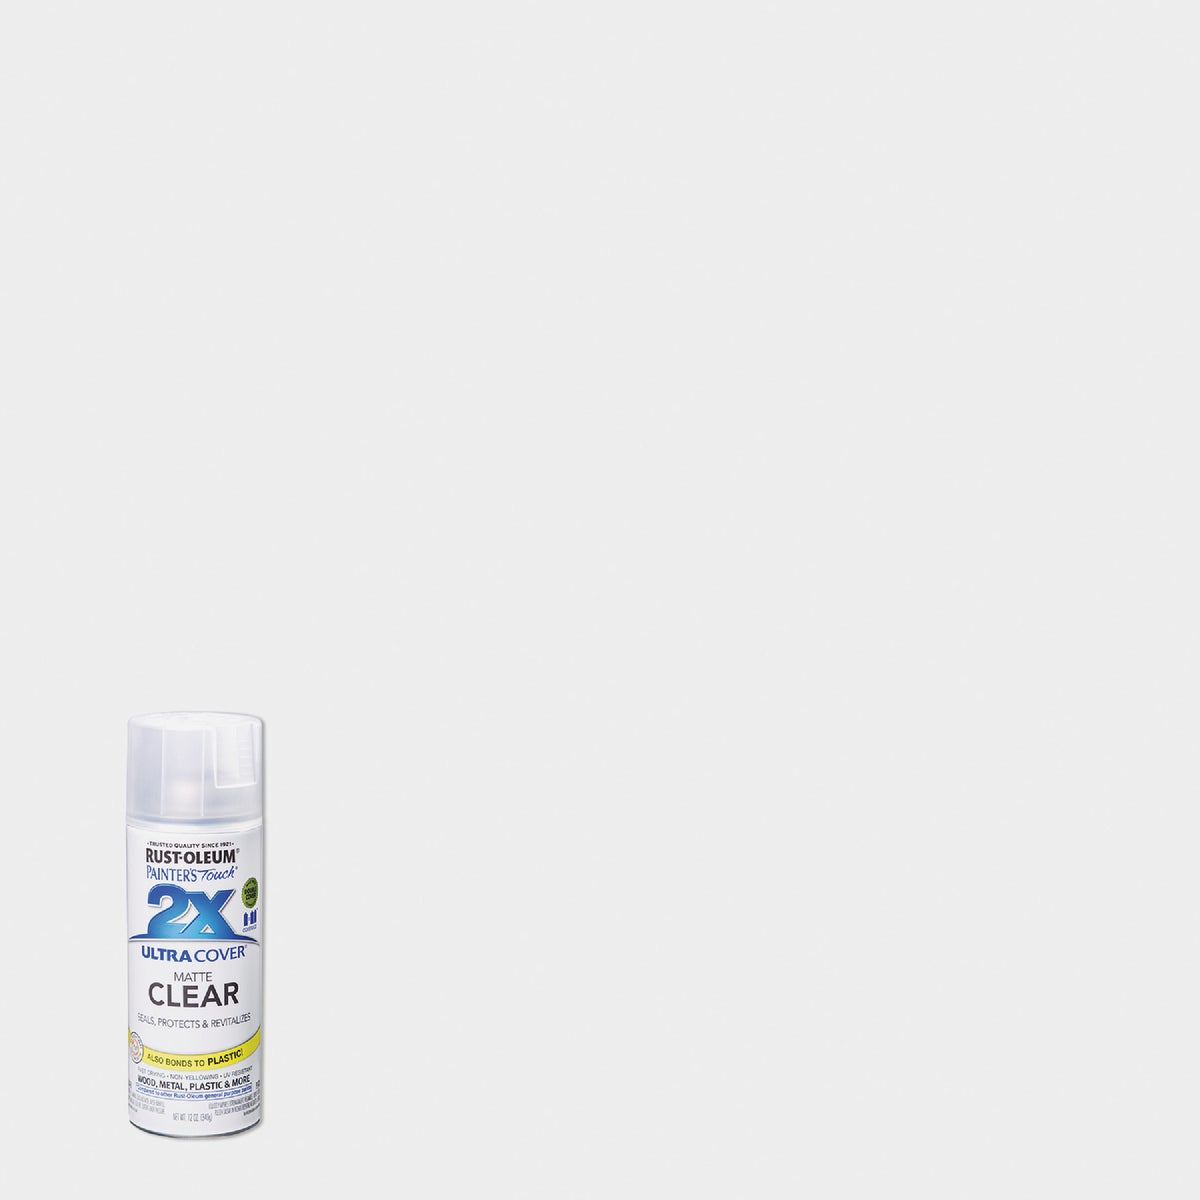 MATTE CLEAR SPRAY PAINT - 249087 by Rustoleum